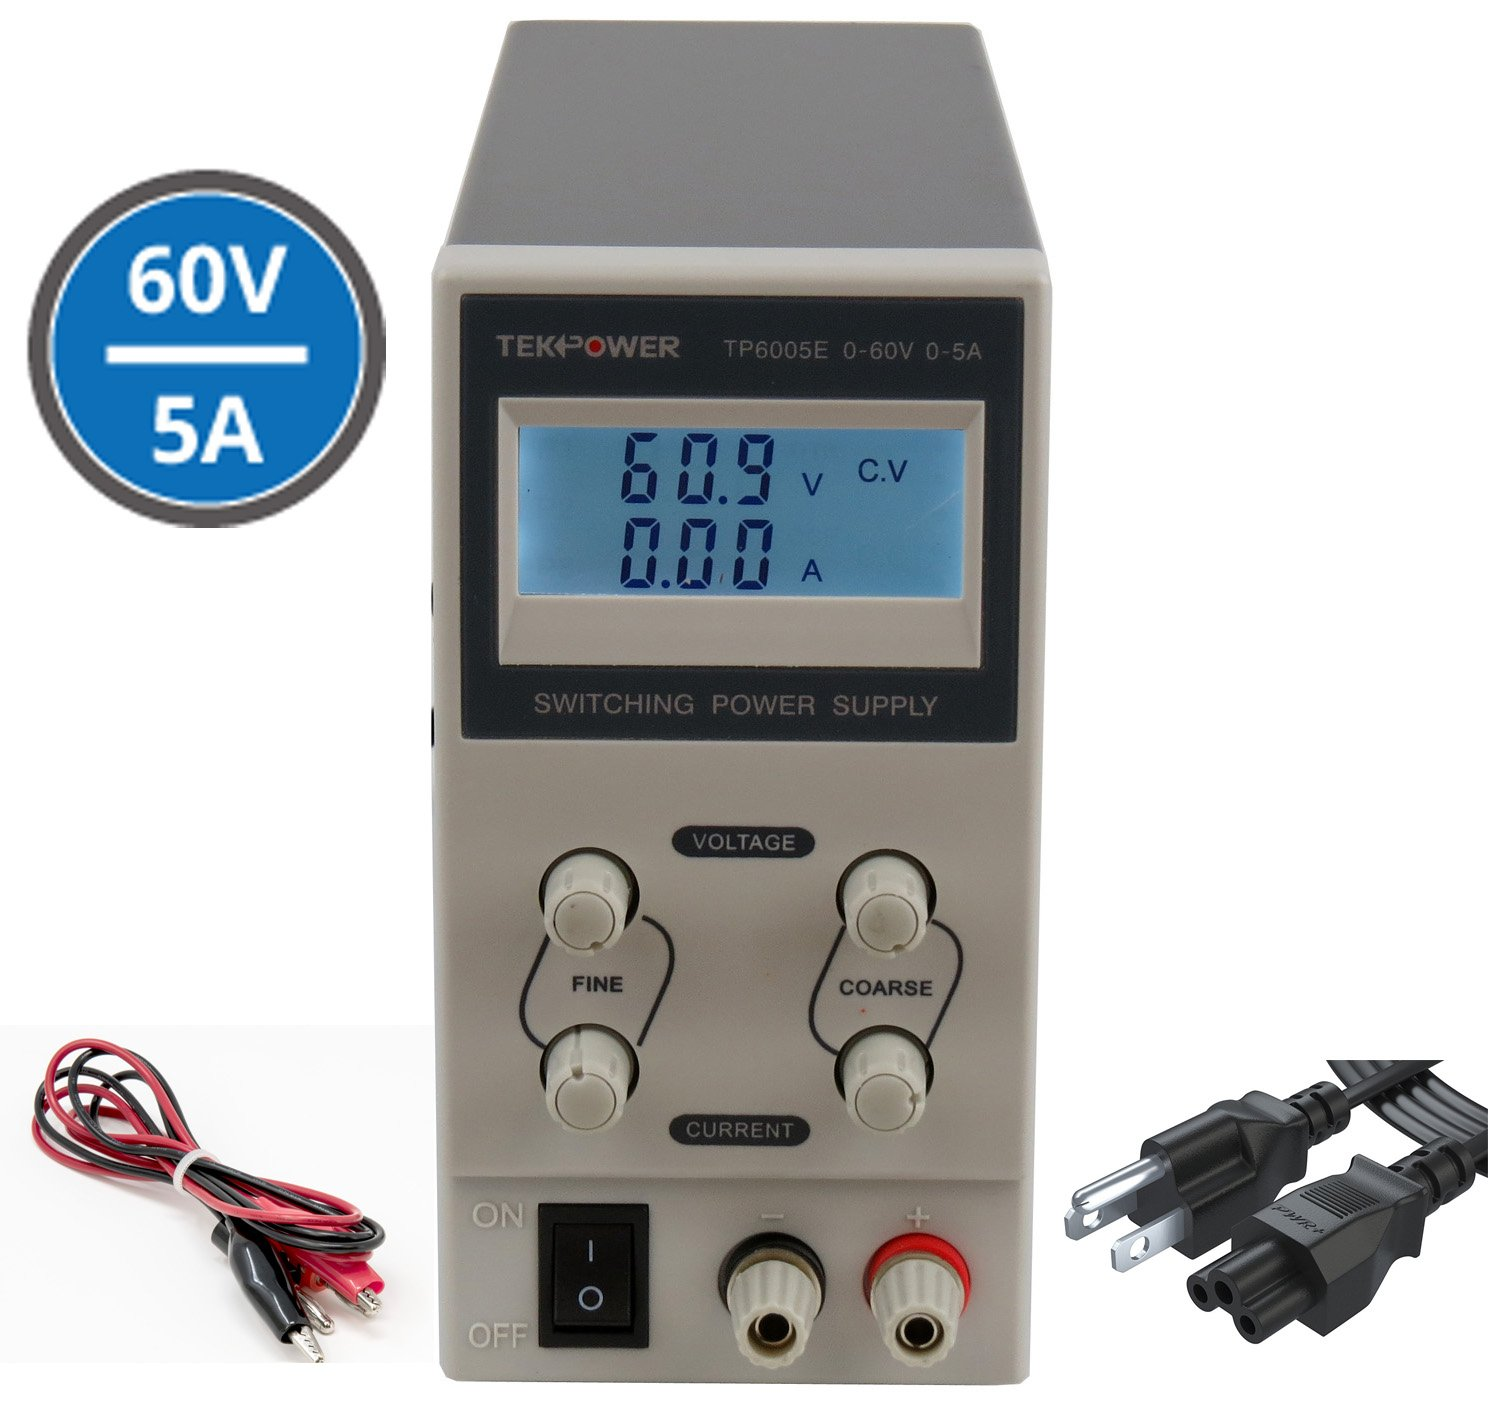 Tekpower Tp6005e Dc Adjustable Switching Power Supply 0 30v0 2a Voltage And Current Regulator 60v 5a Digital Display Home Audio Theater